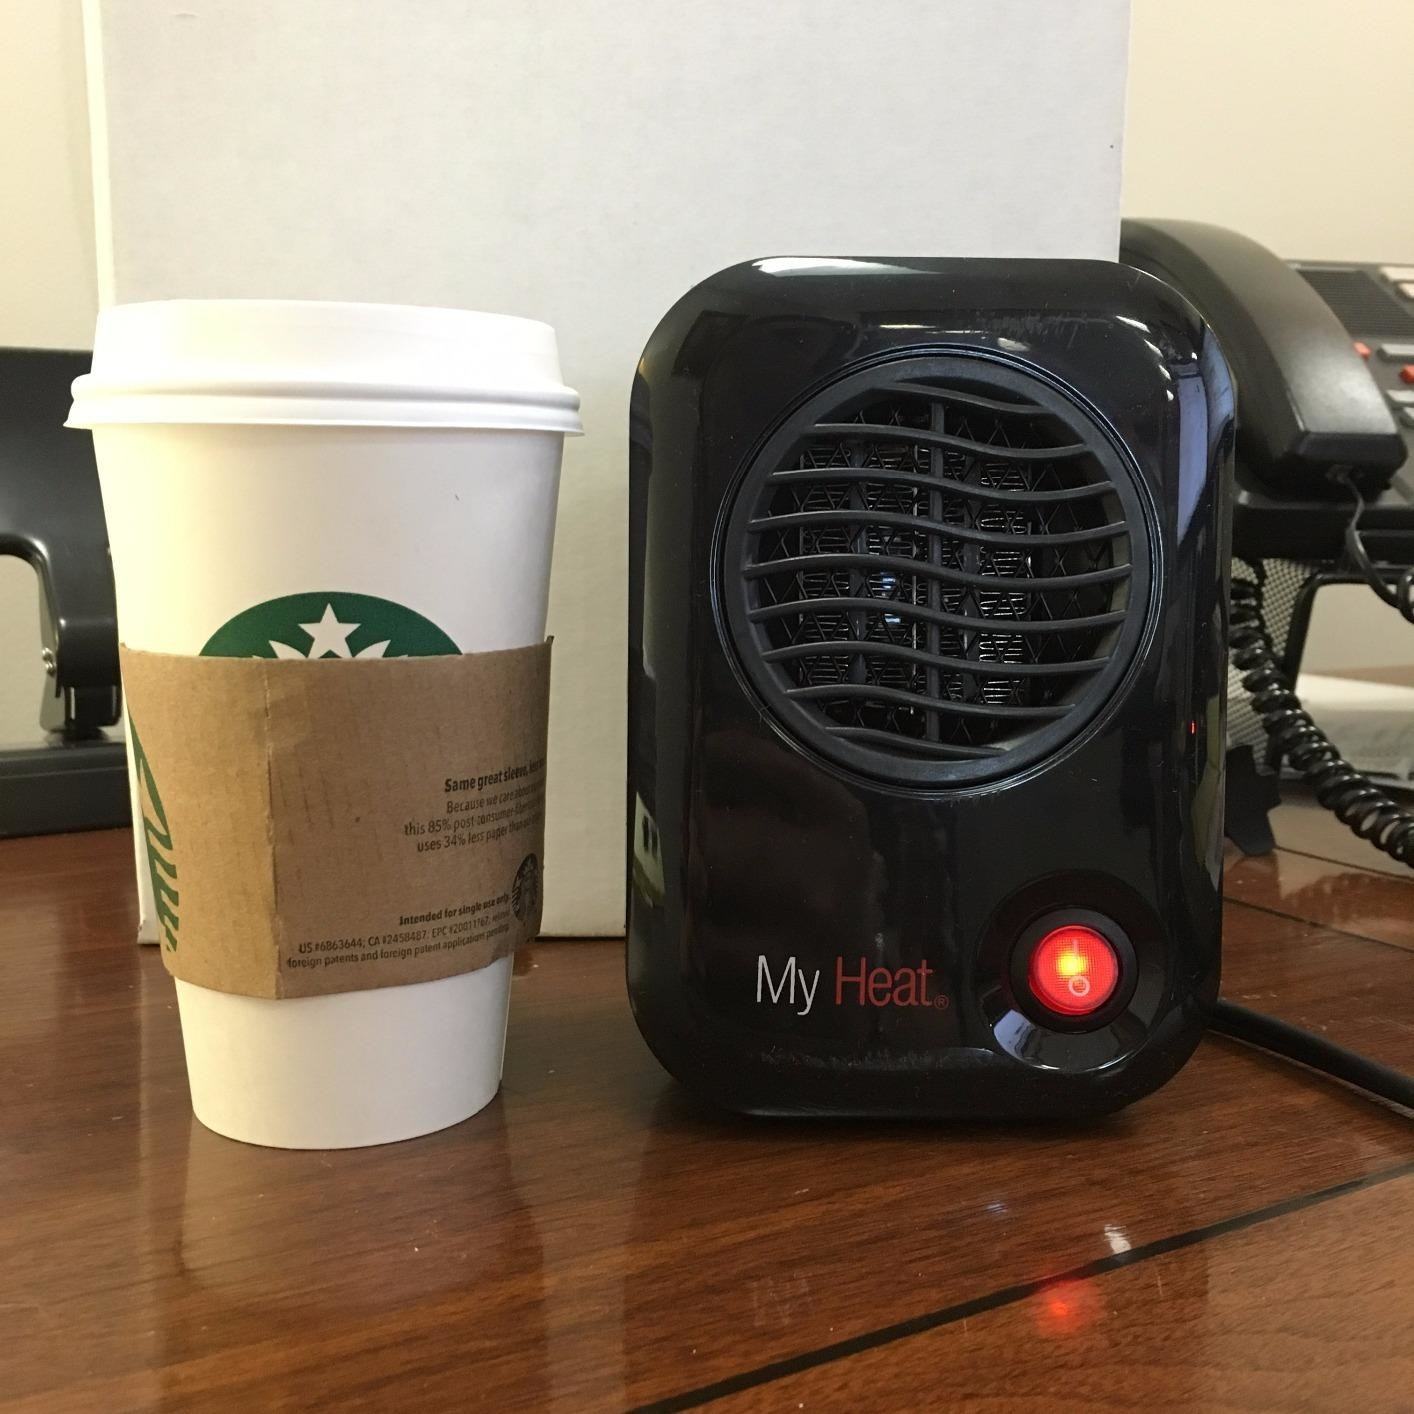 A reviewer's heat next to a starbucks cup, showing it's about the same height